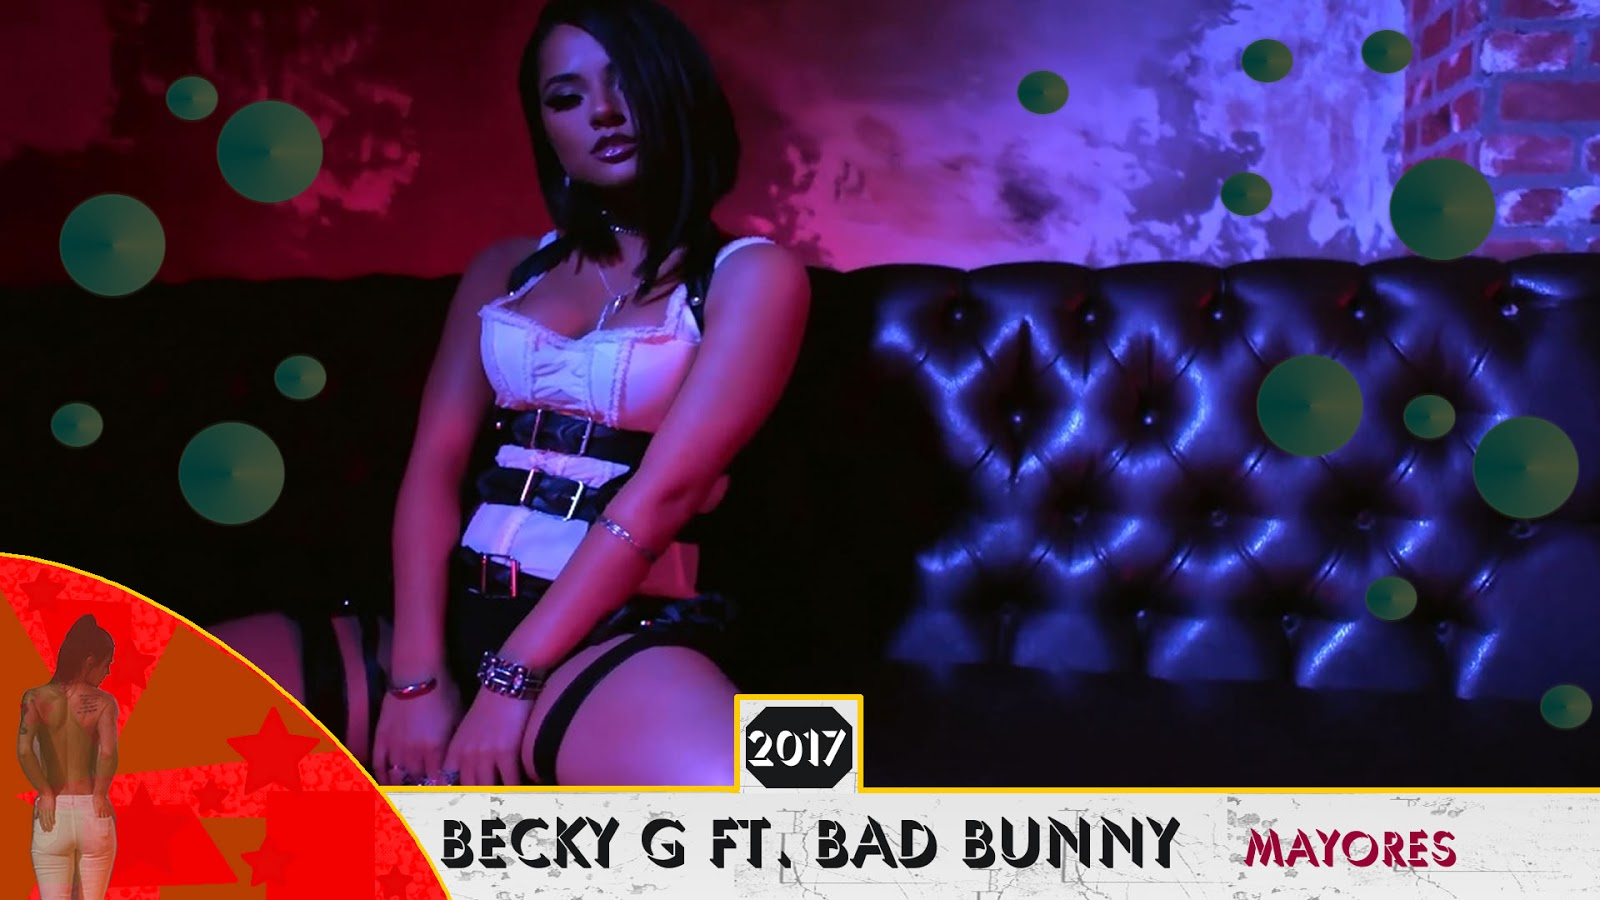 Mayores - Becky G Ft. Bad Bunny [Video Oficial]